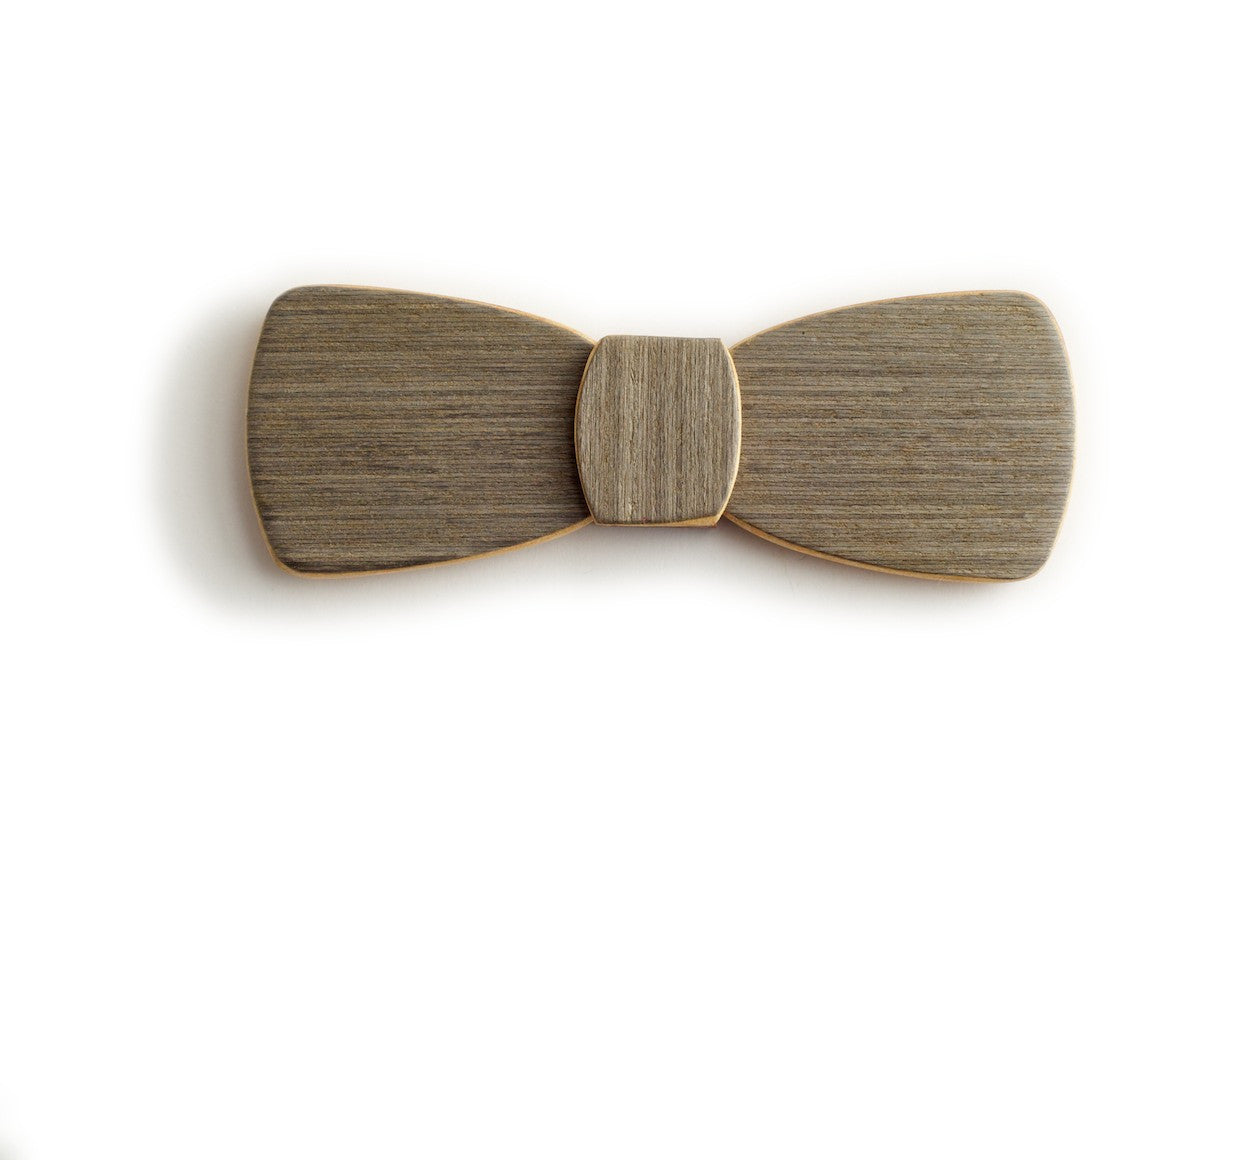 unique original quirky gift for men white noise wooden bow tie